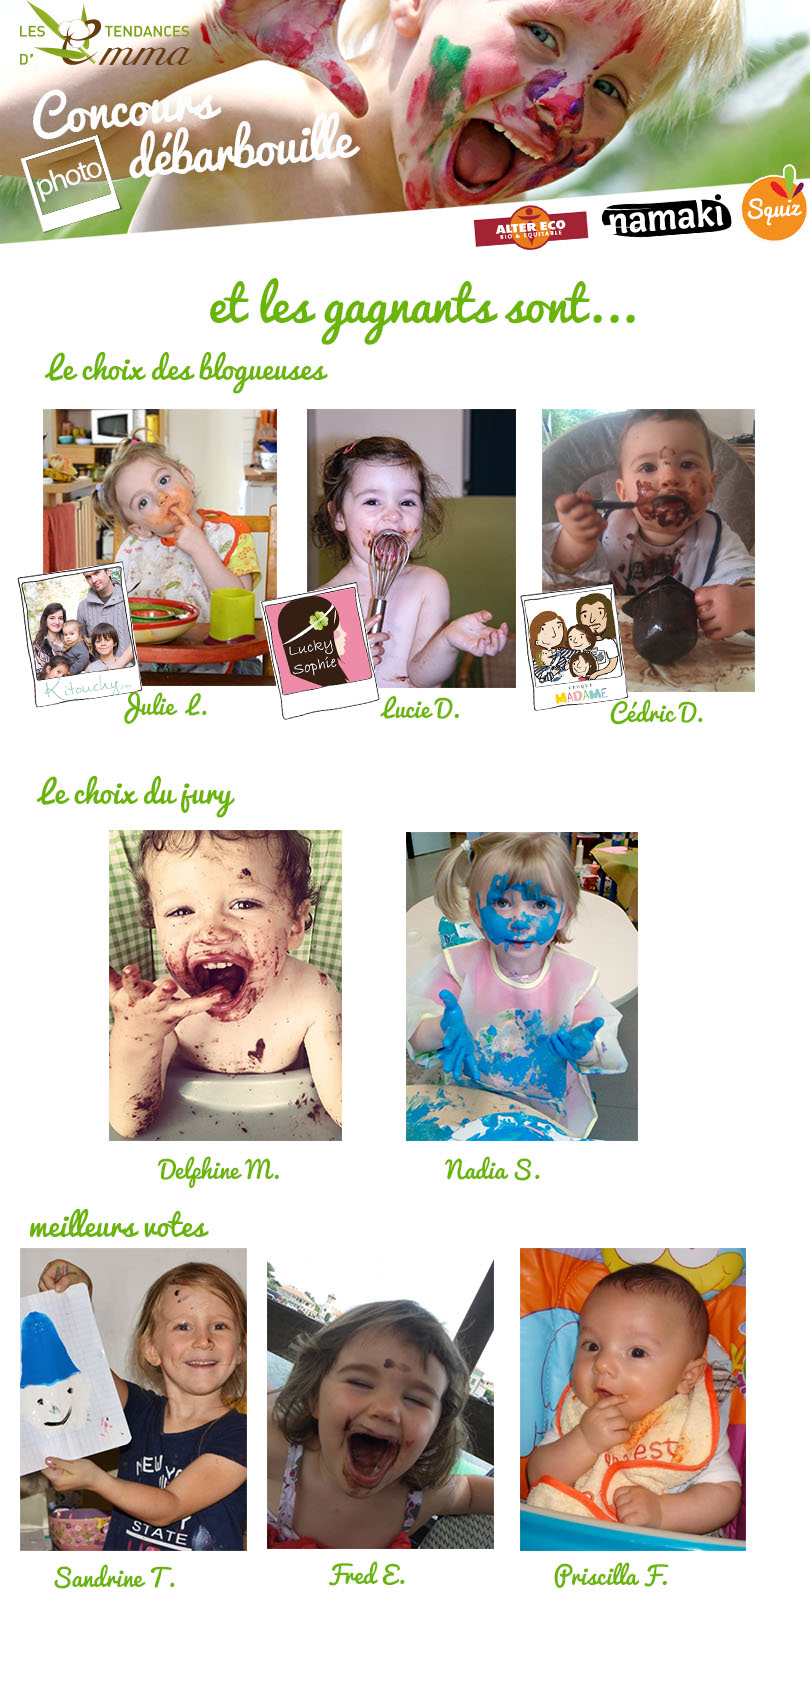 concours_debarbouille_gagnant